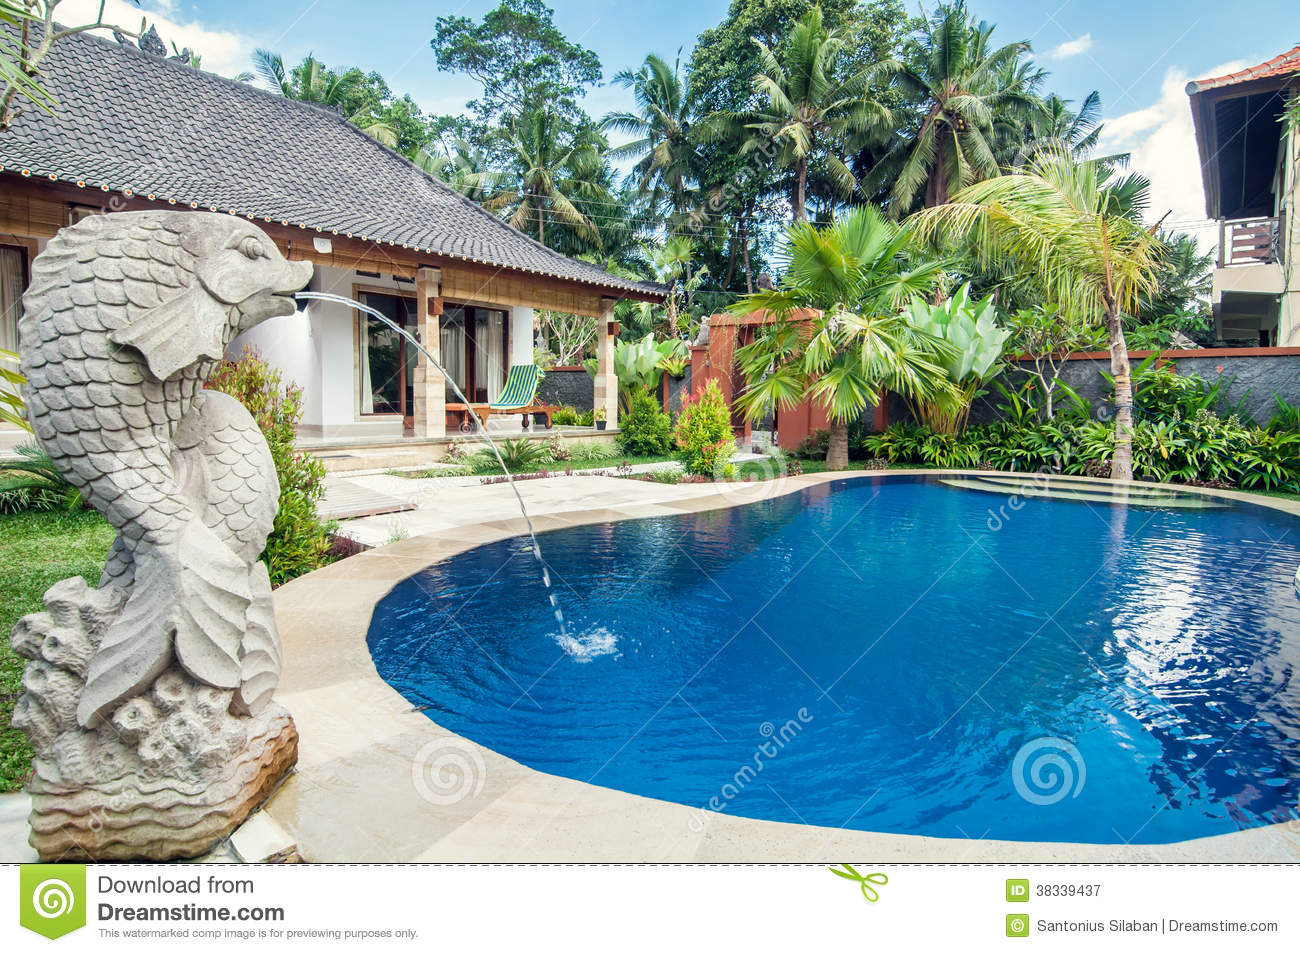 Villa de luxe avec la piscine ext rieure image stock for Piscine destock